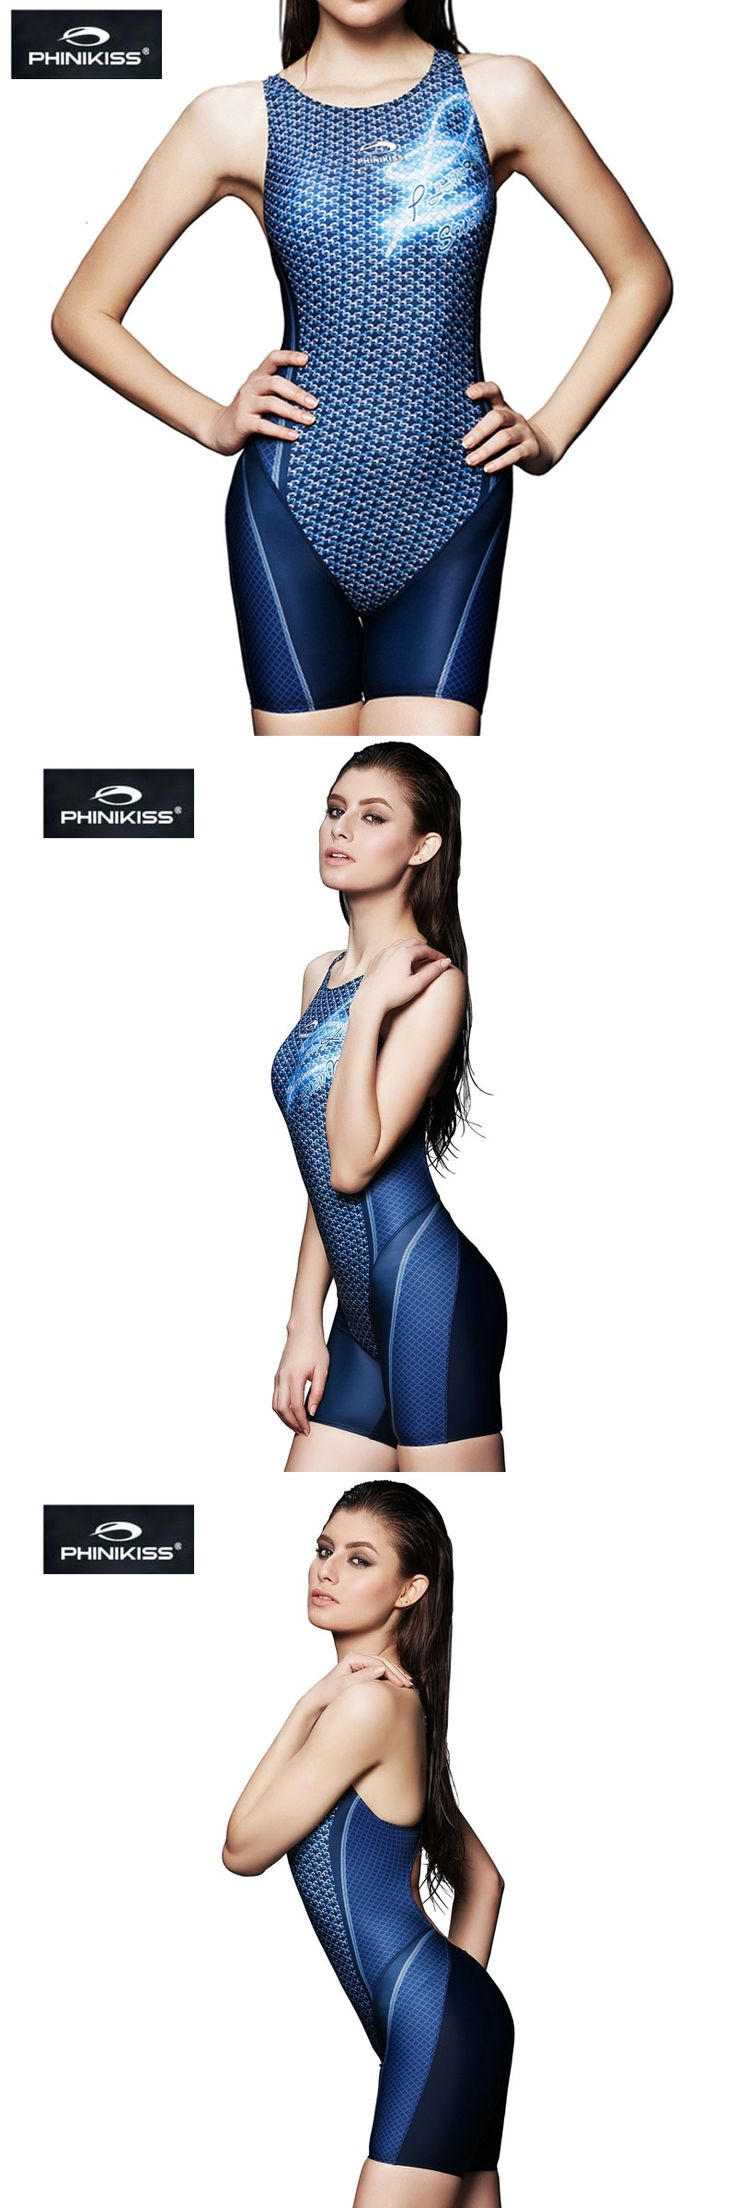 PHINIKISS Large Size Swimwear Swimming Suit For Women Swimsuits one-piece Triathlon Swimsuit Professional Competition Bathing